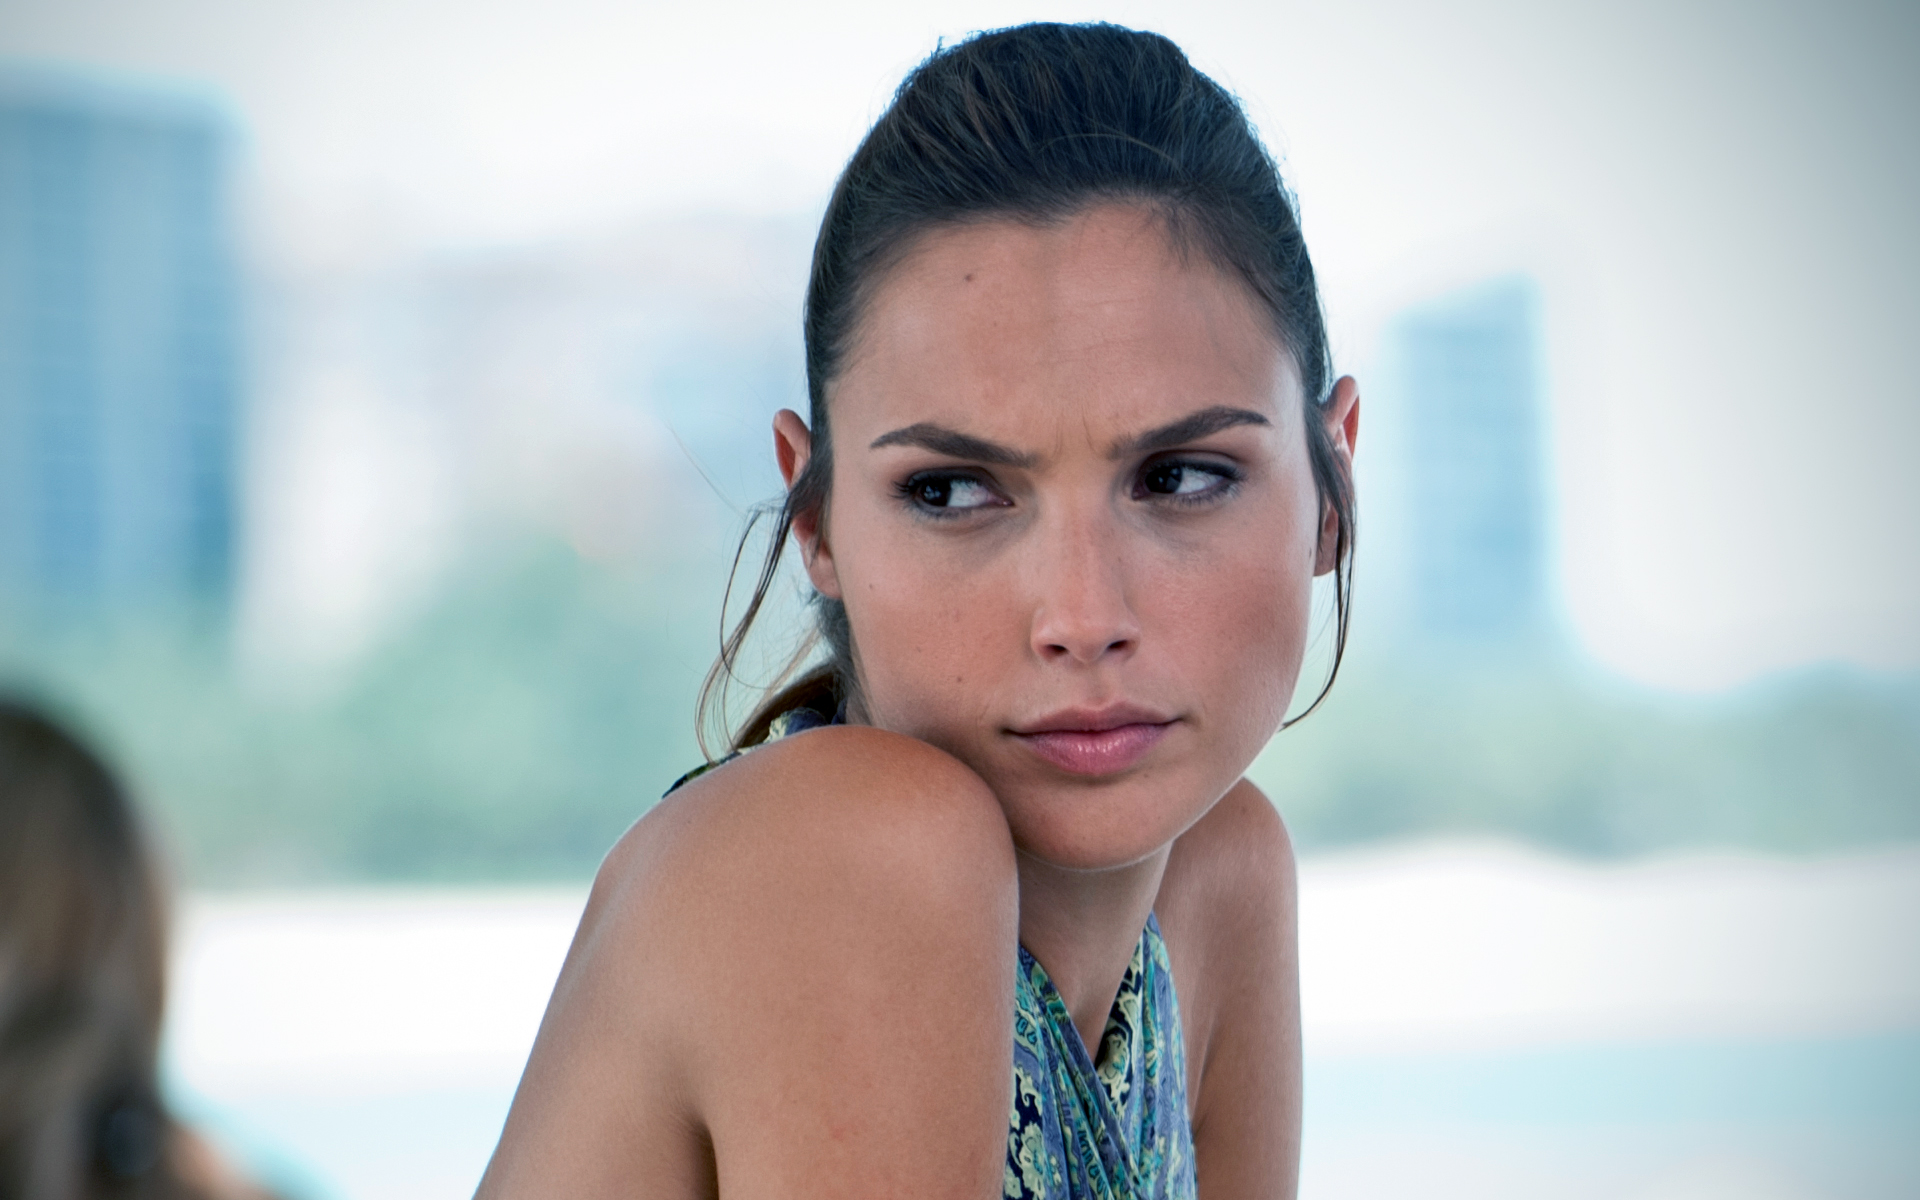 Solve Israel's Problems » Please Share Our Articles » Fast & Furious Actress was a Former ...